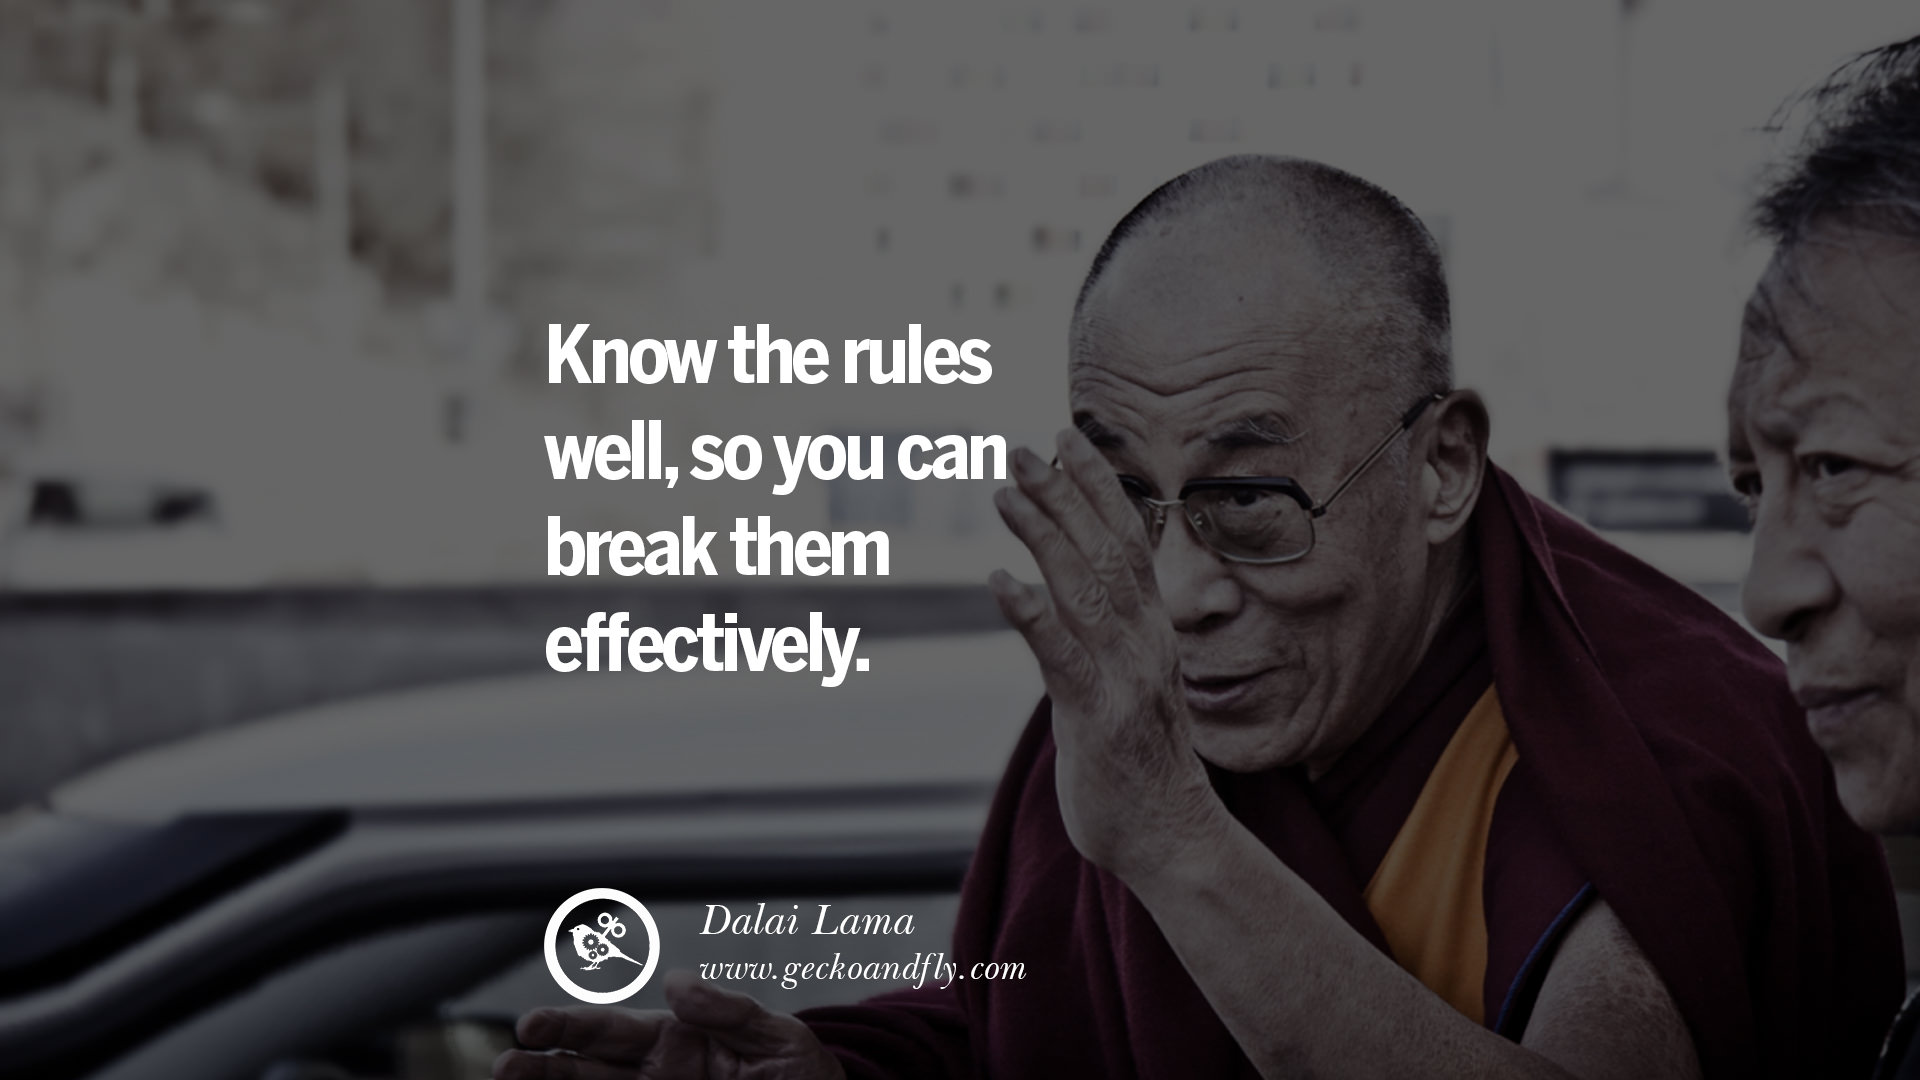 Know the rules well so you can break them effectively